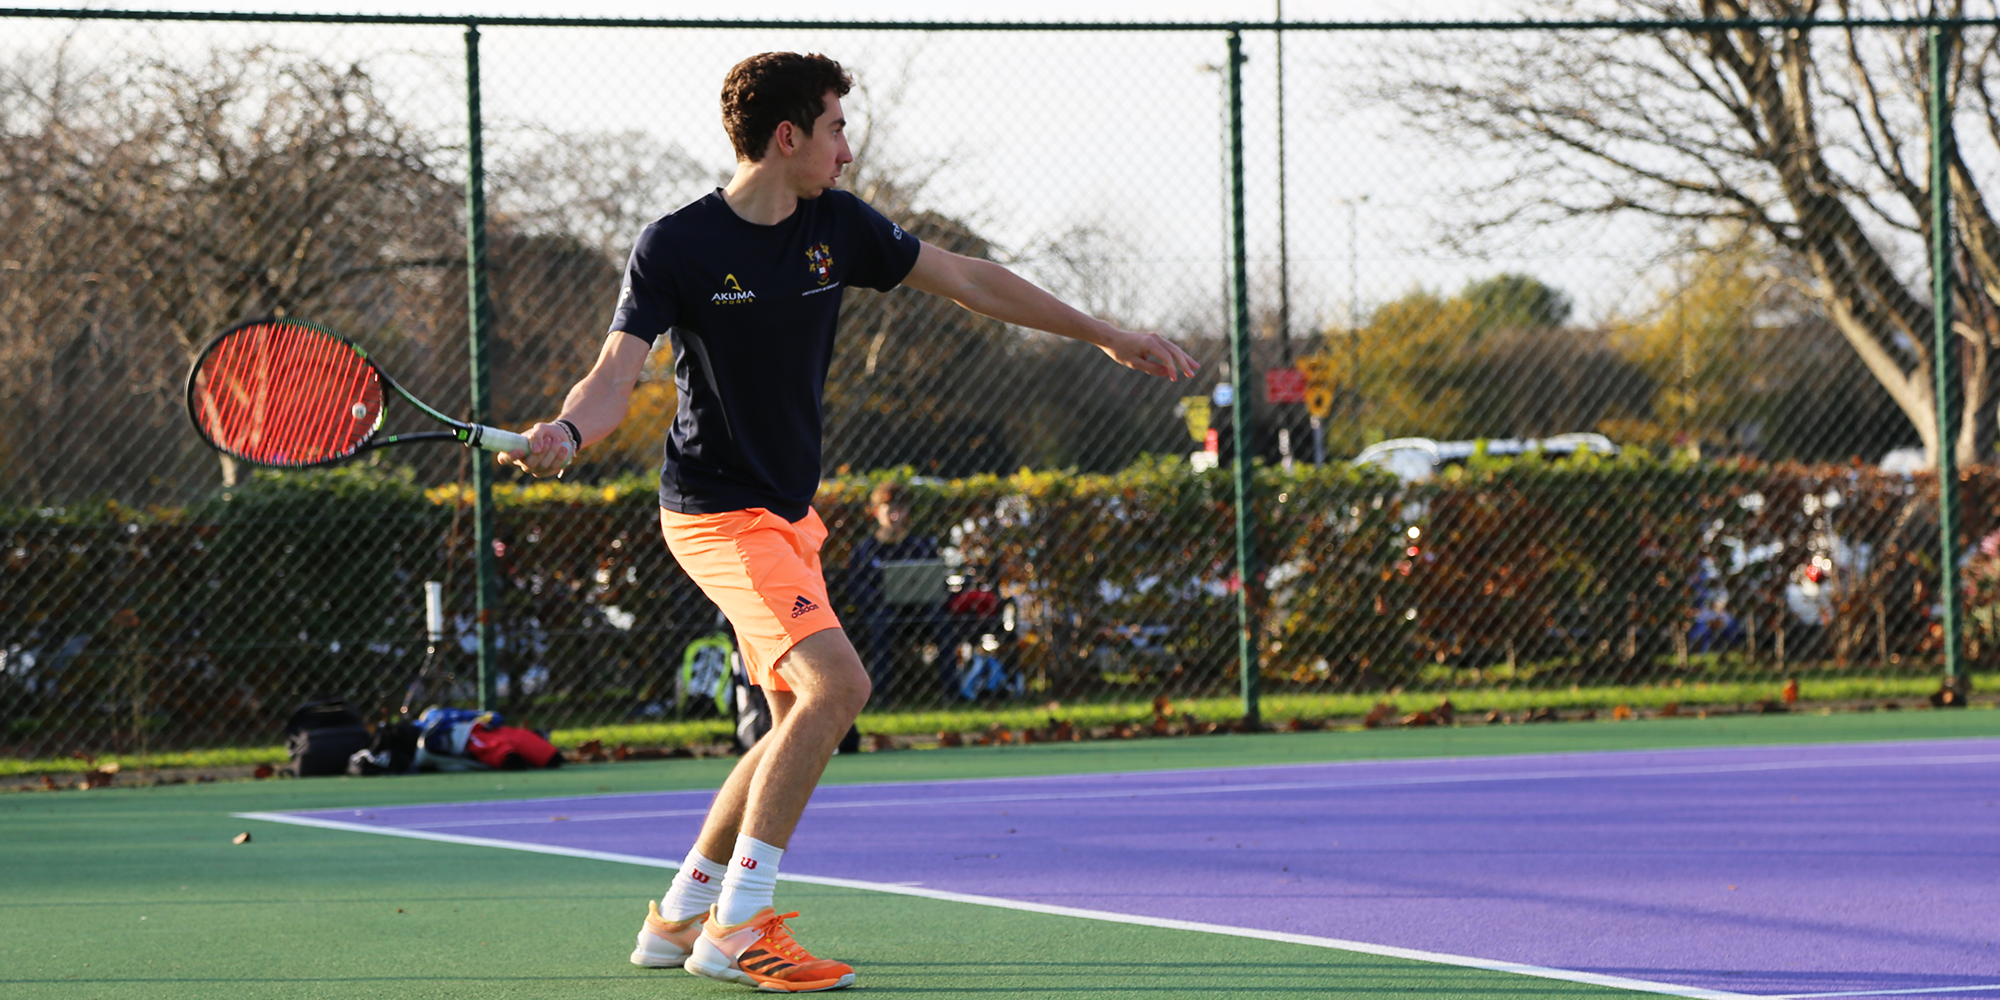 Are you interested in playing sport? Would you like to play competitively for the University or recreationally with friends? Here at the University of Chichester we have a wide range of sports for you to play.